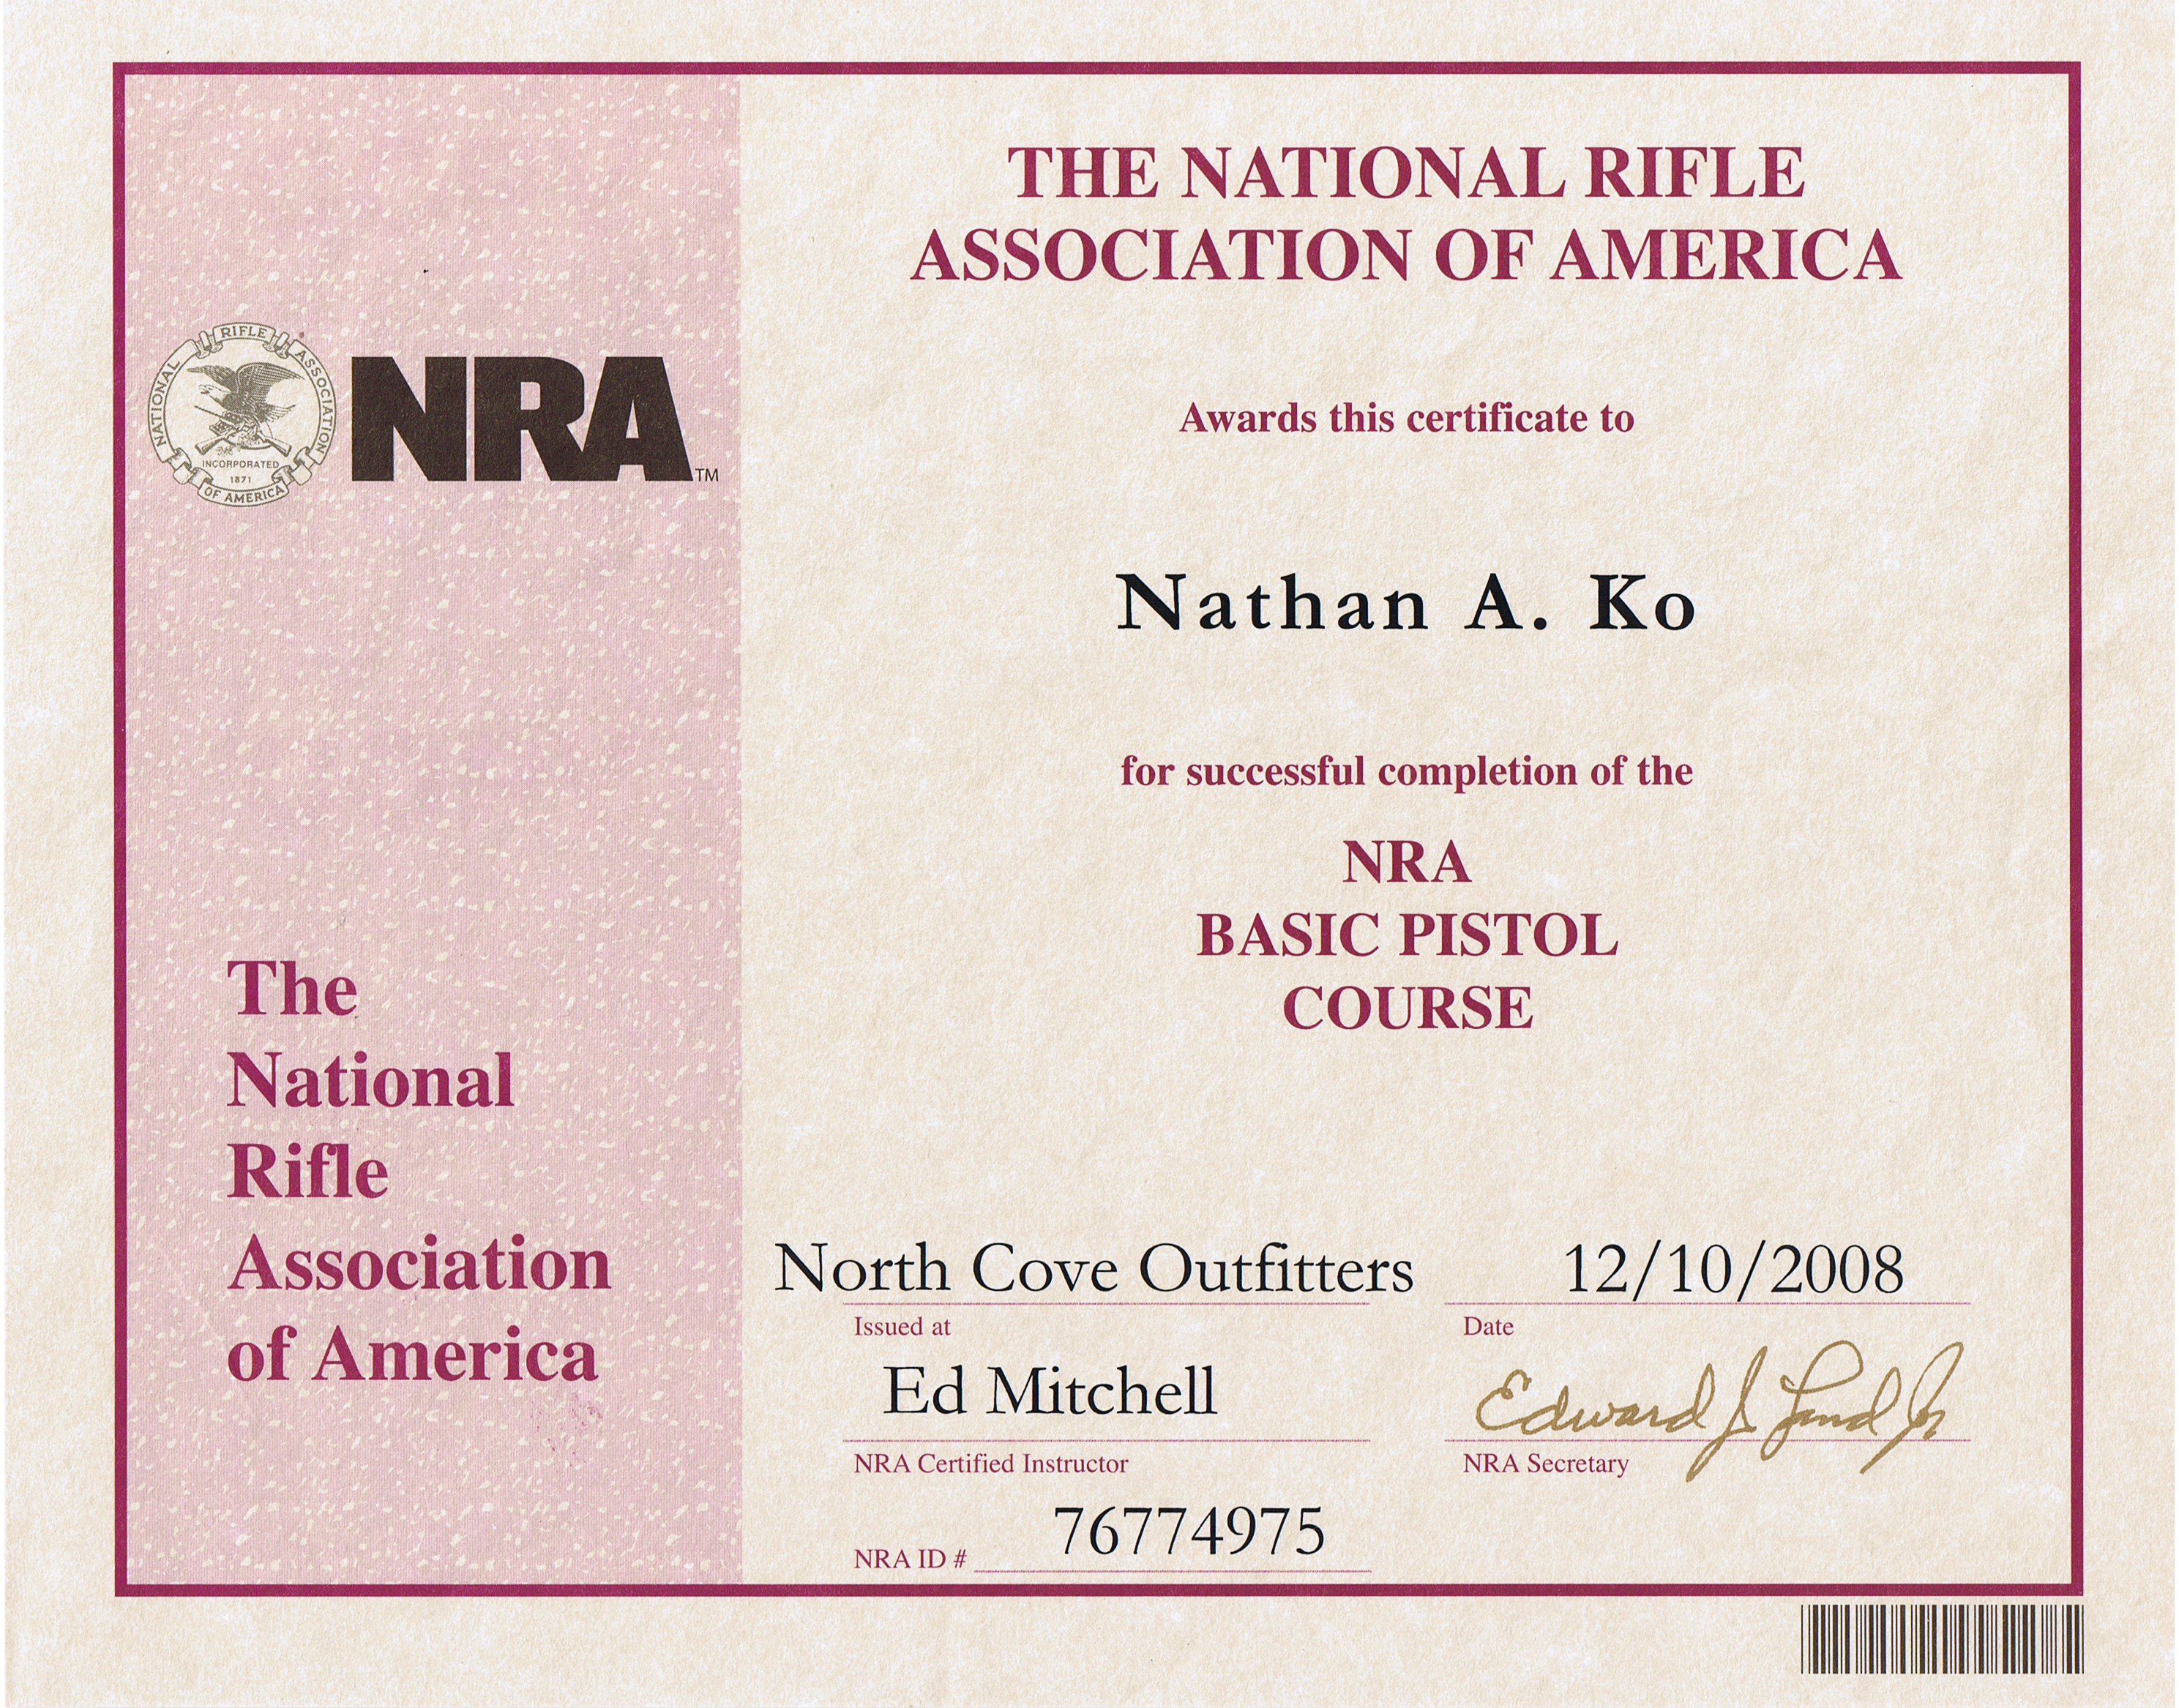 Nra certificate template images templates example free download basic certificate template gallery templates example free download nra certificate template choice image templates example free alramifo Gallery